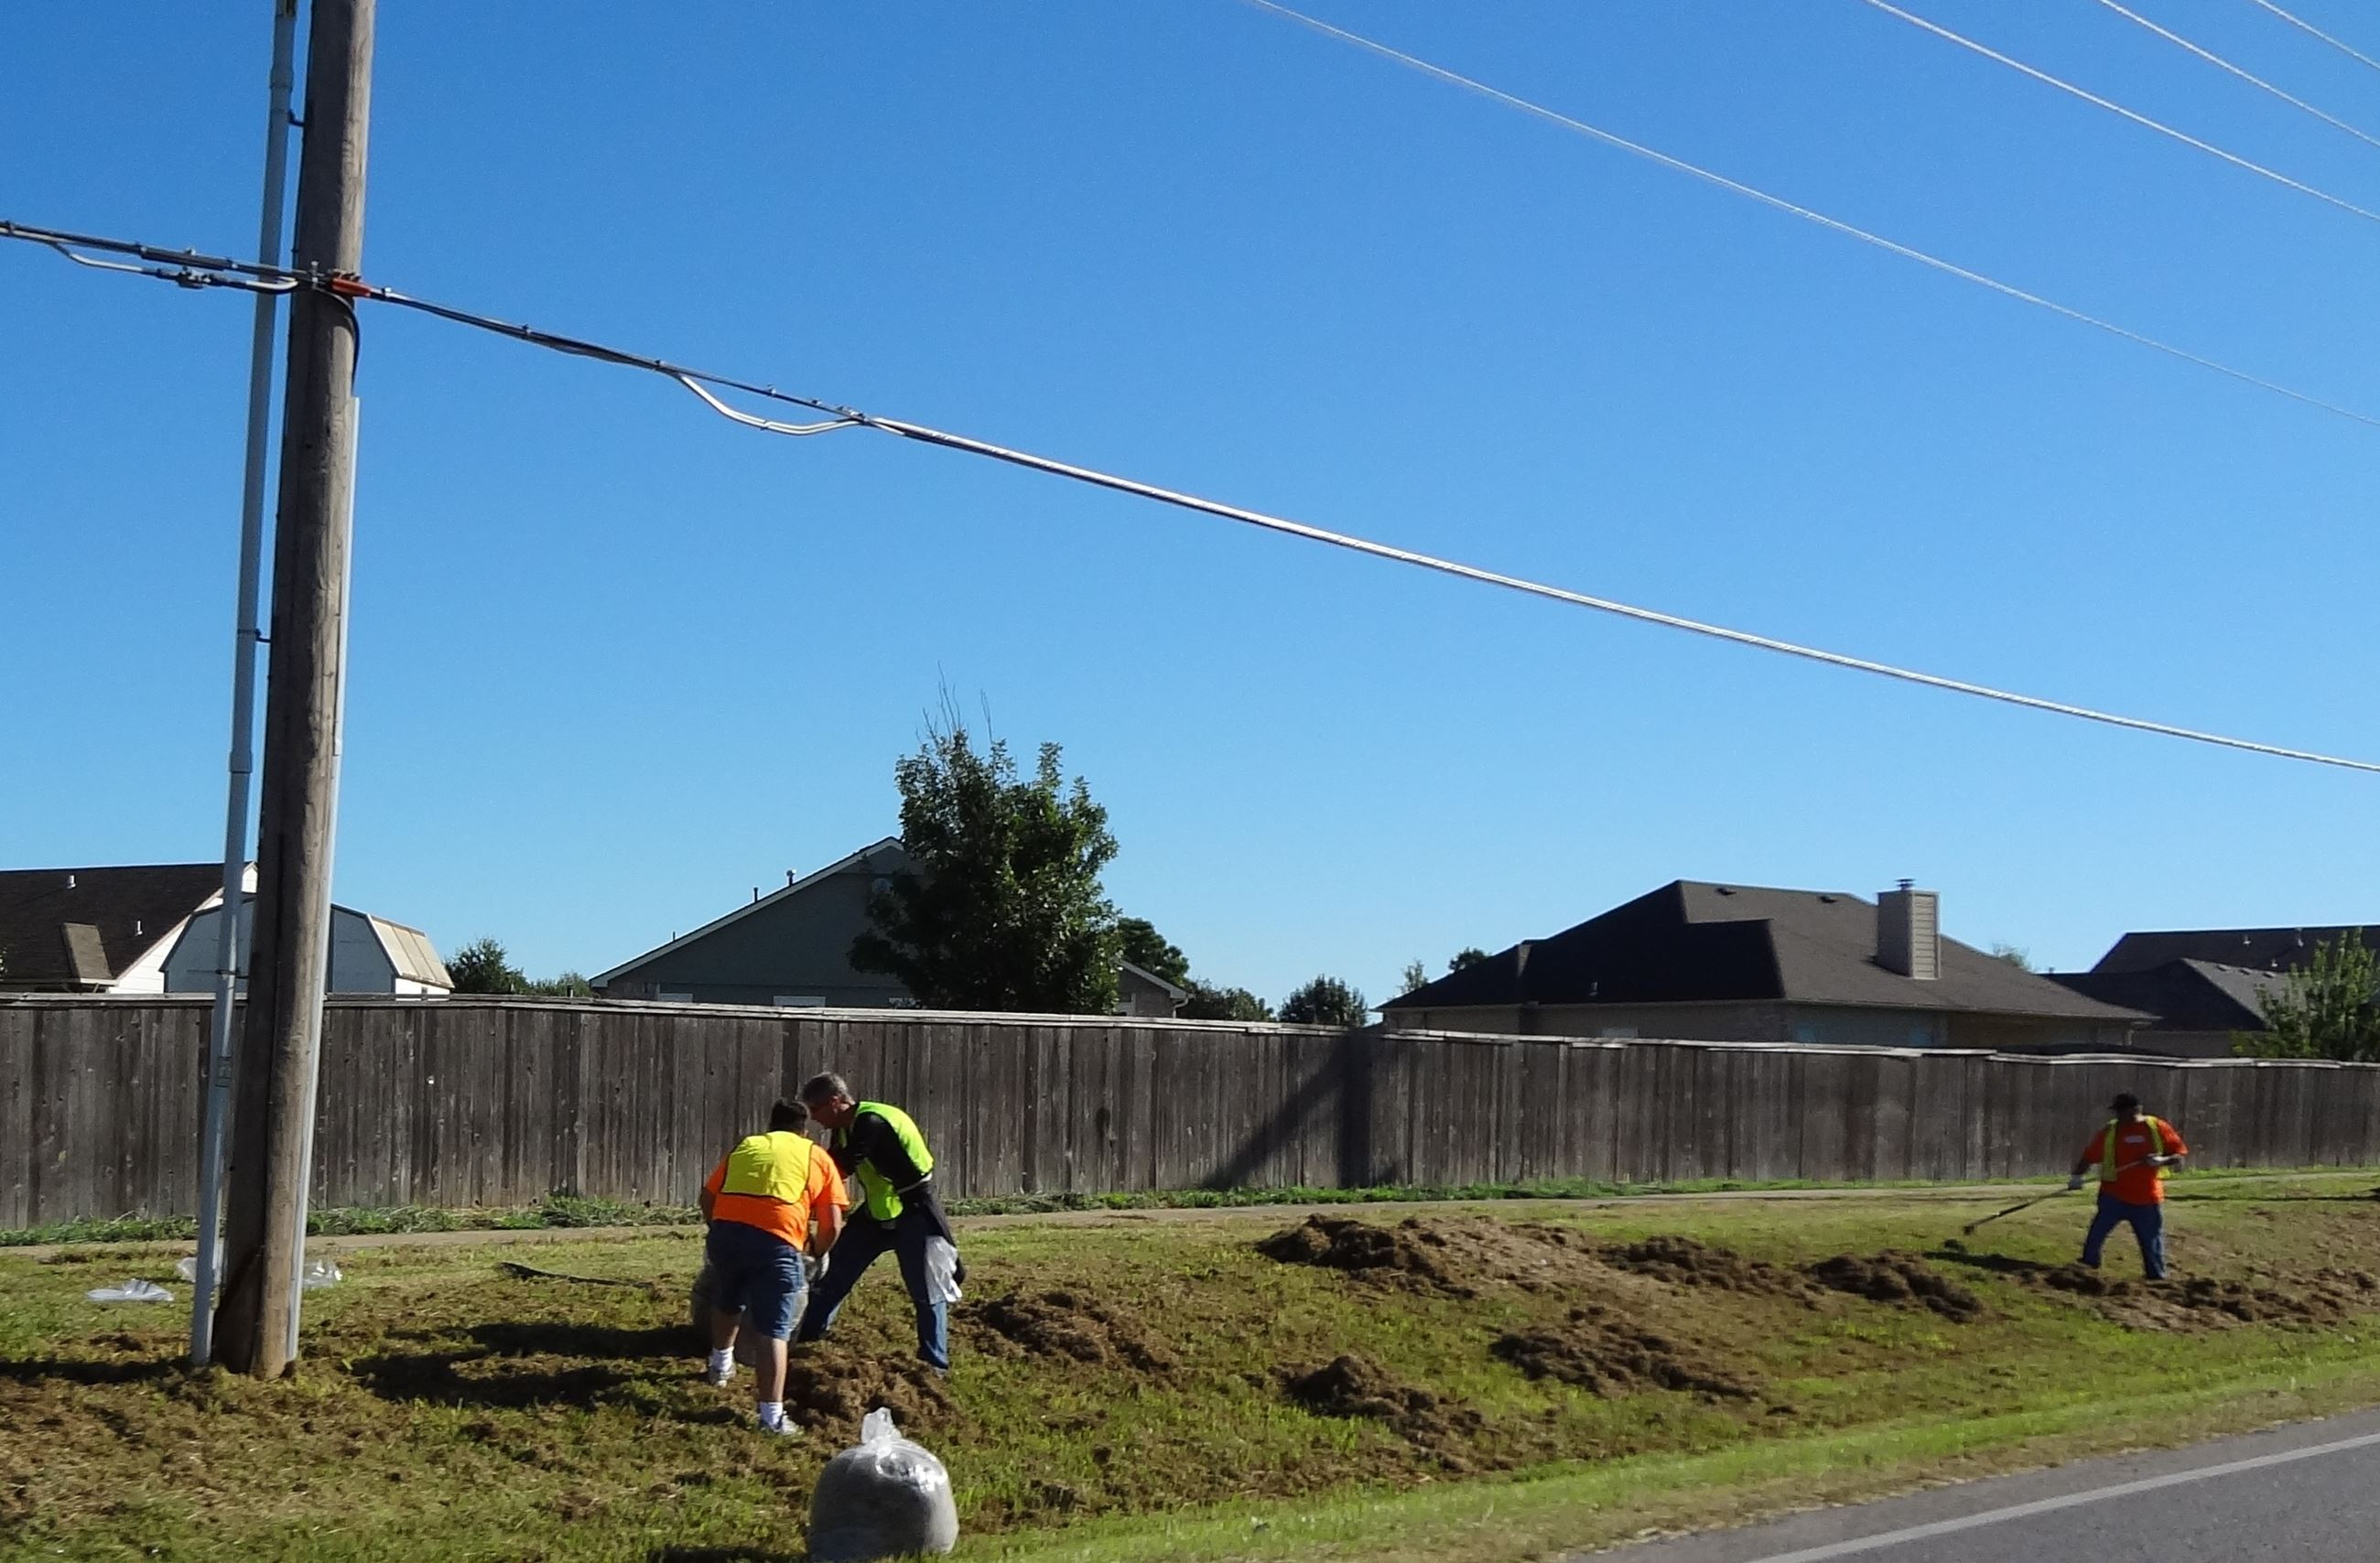 Volunteers raking grass along Mingo Street